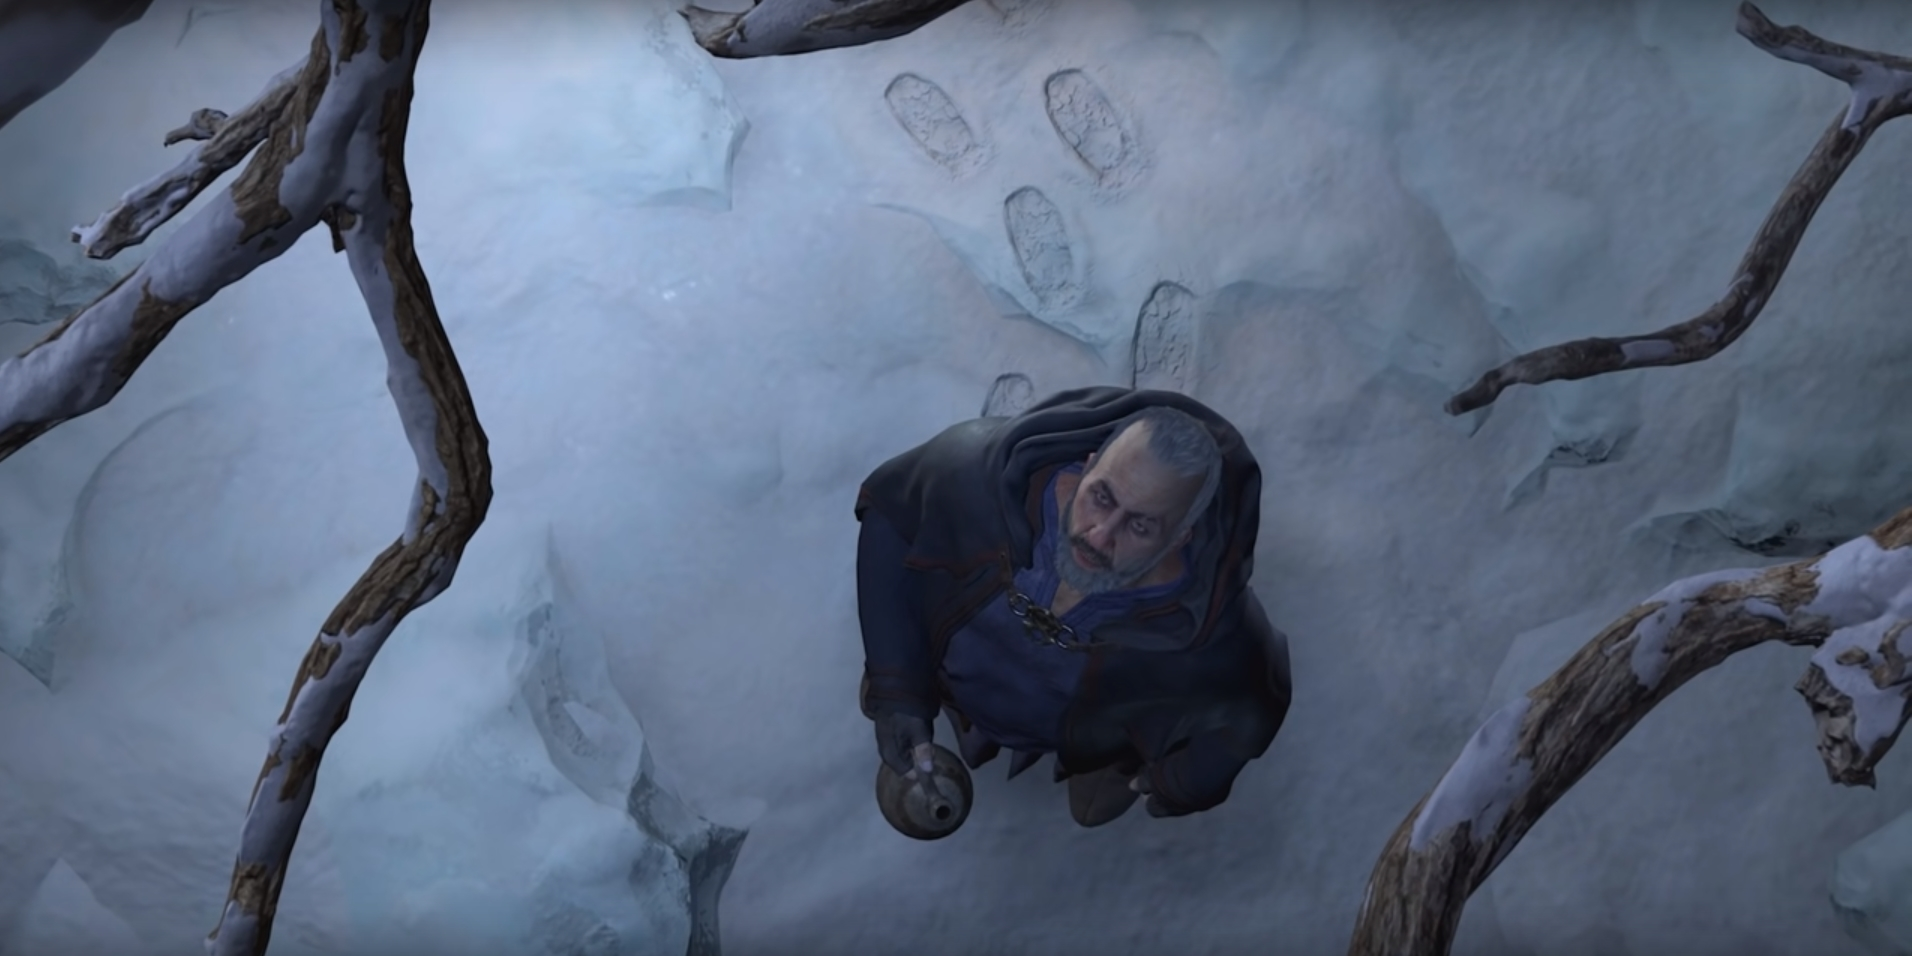 Brave The Frosty Mountains Of Diablo IV's Upcoming Zone, The Fractured Peaks